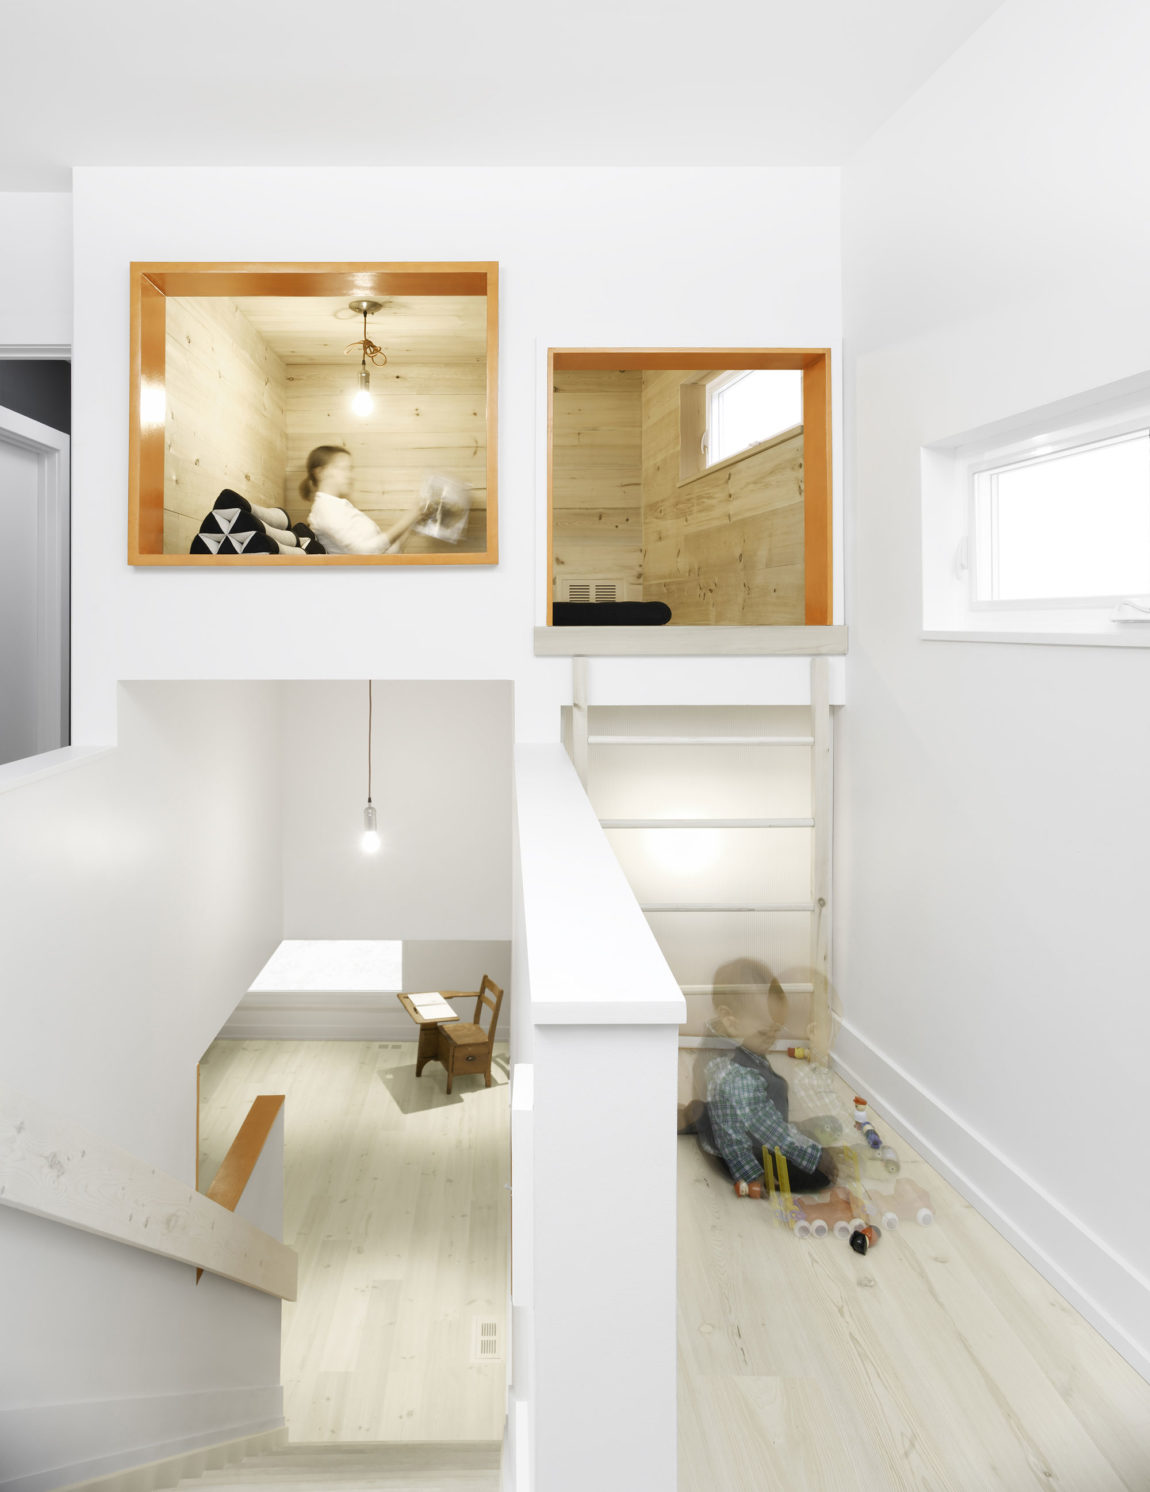 Winona House by 25:8 Research + Design (9)